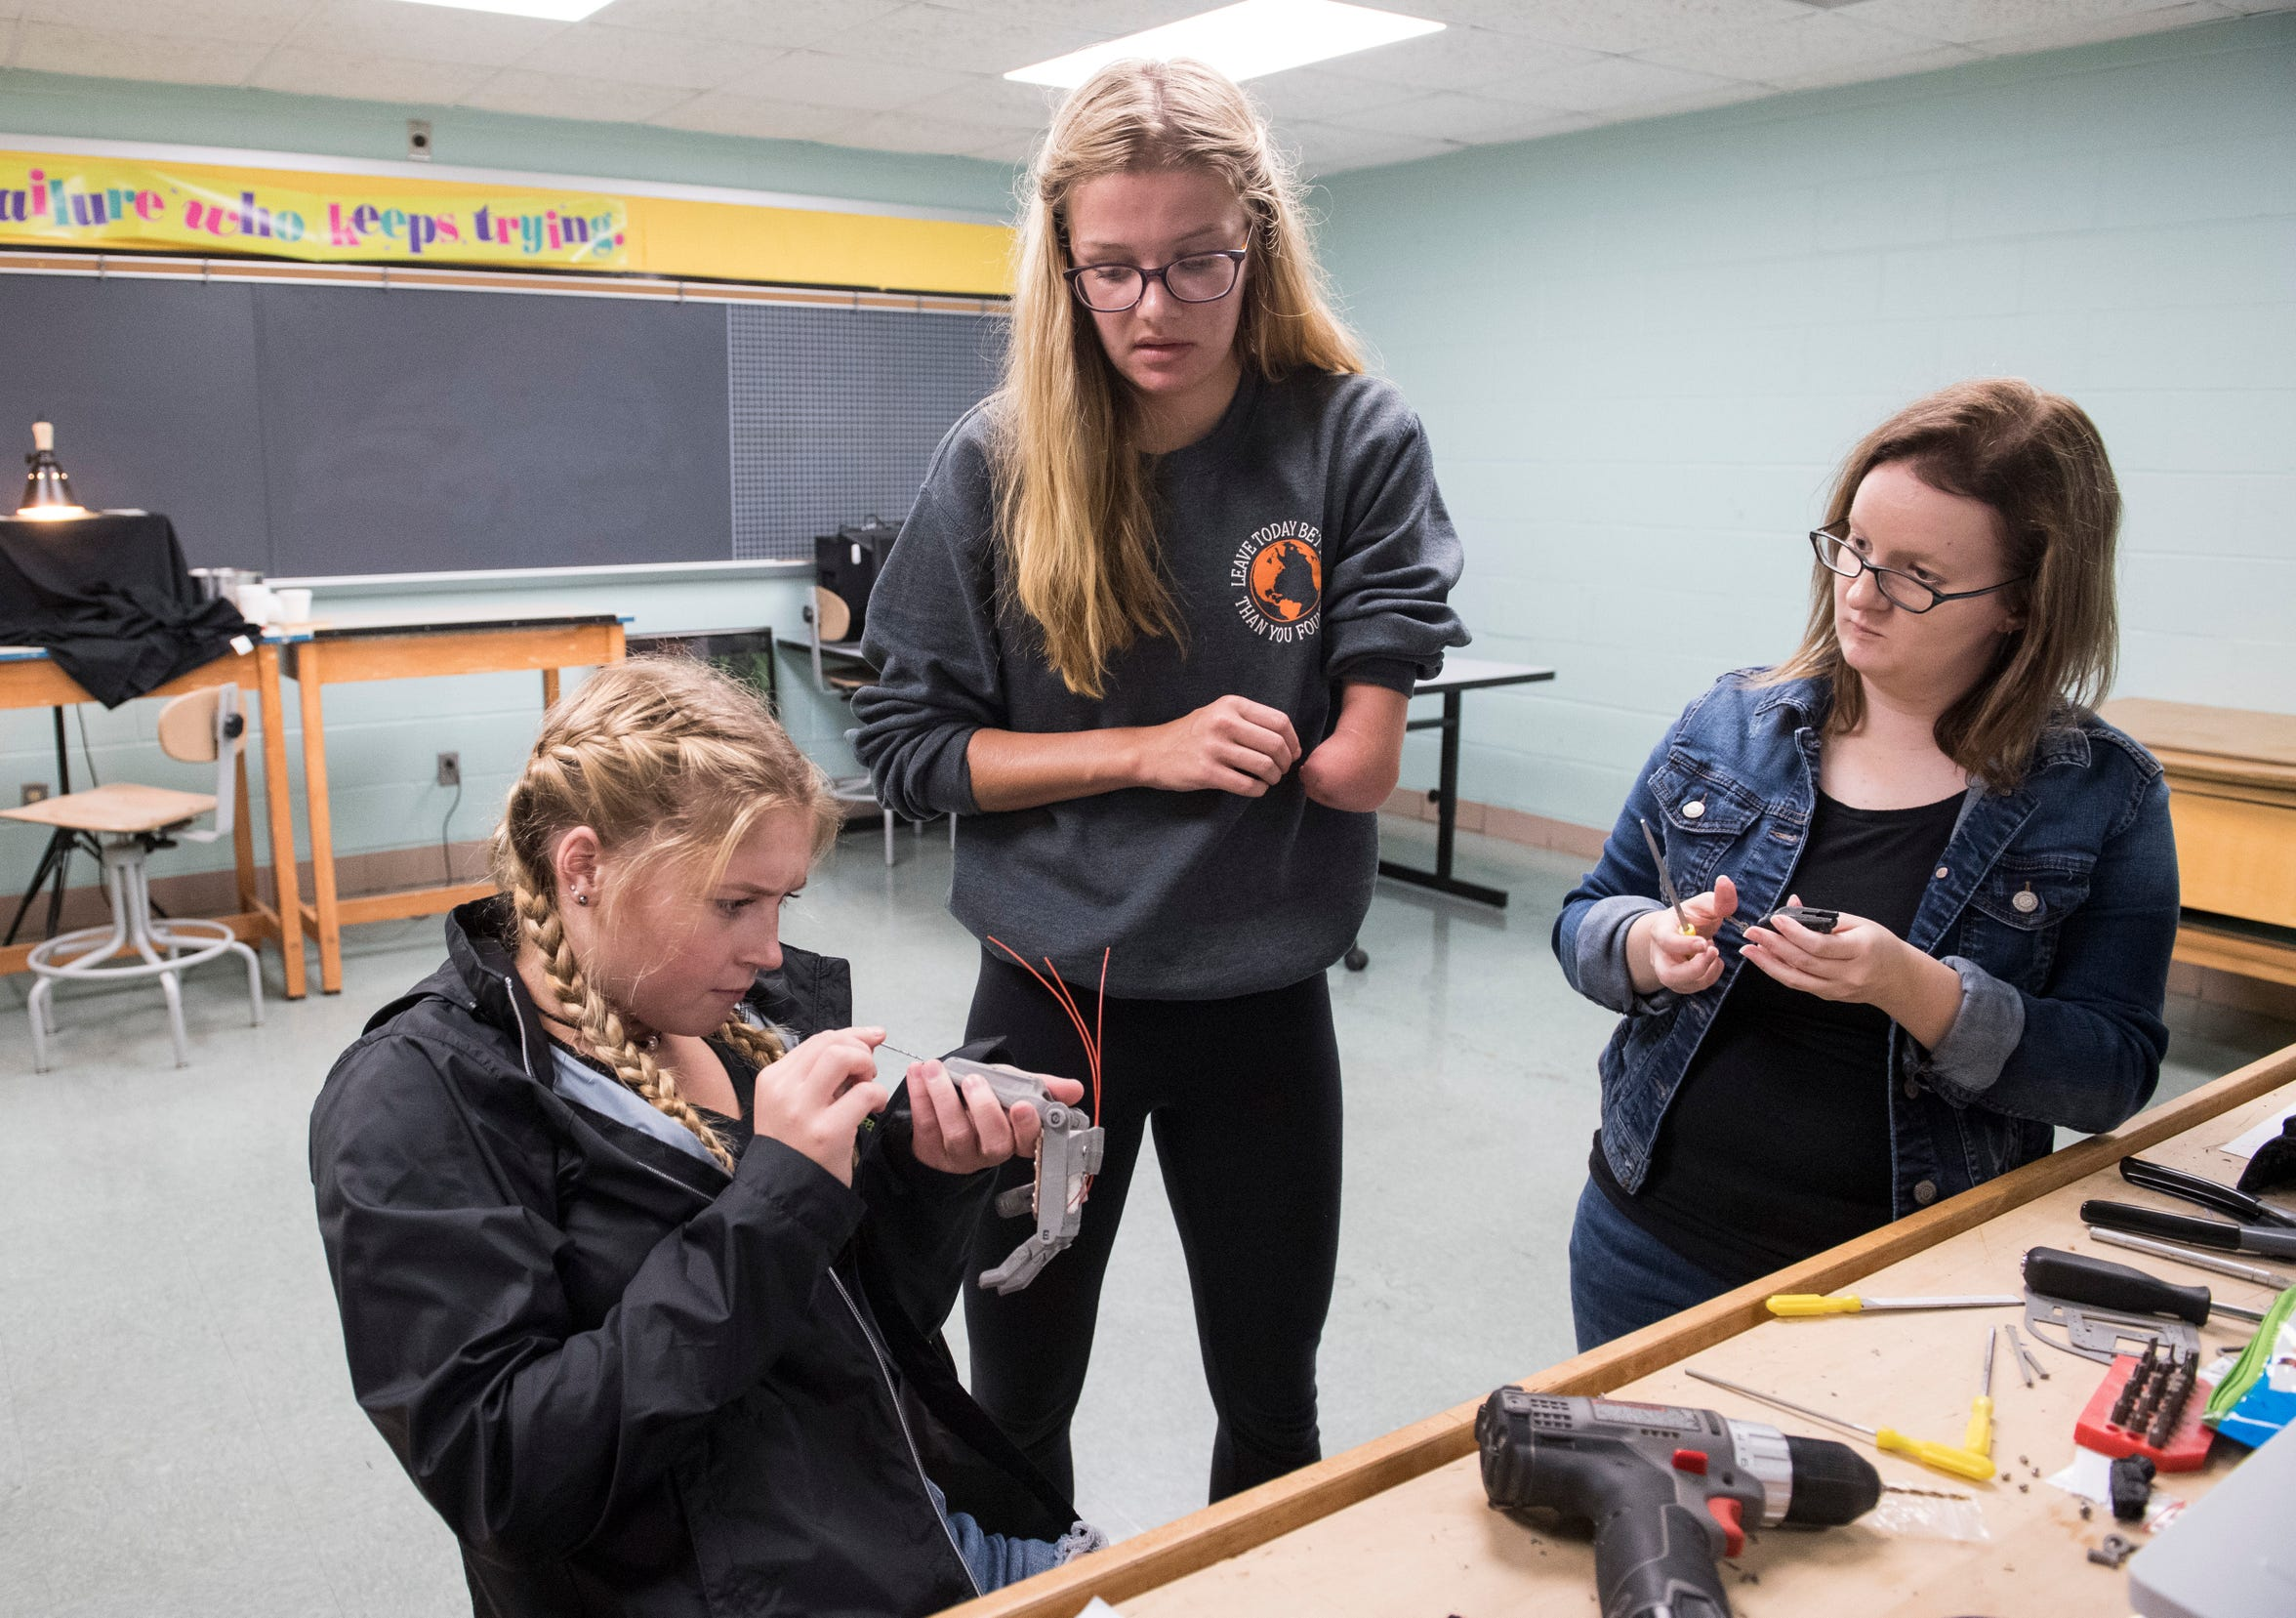 Kenzie Paul, middle, and classmates Erica Gerald, left, and Hanna Kiger, right, work on their ODY Hand, a 3D printable upper limb assistive device, during her Visual Communication class at Mt. Vernon high school Sept. 25, 2018.